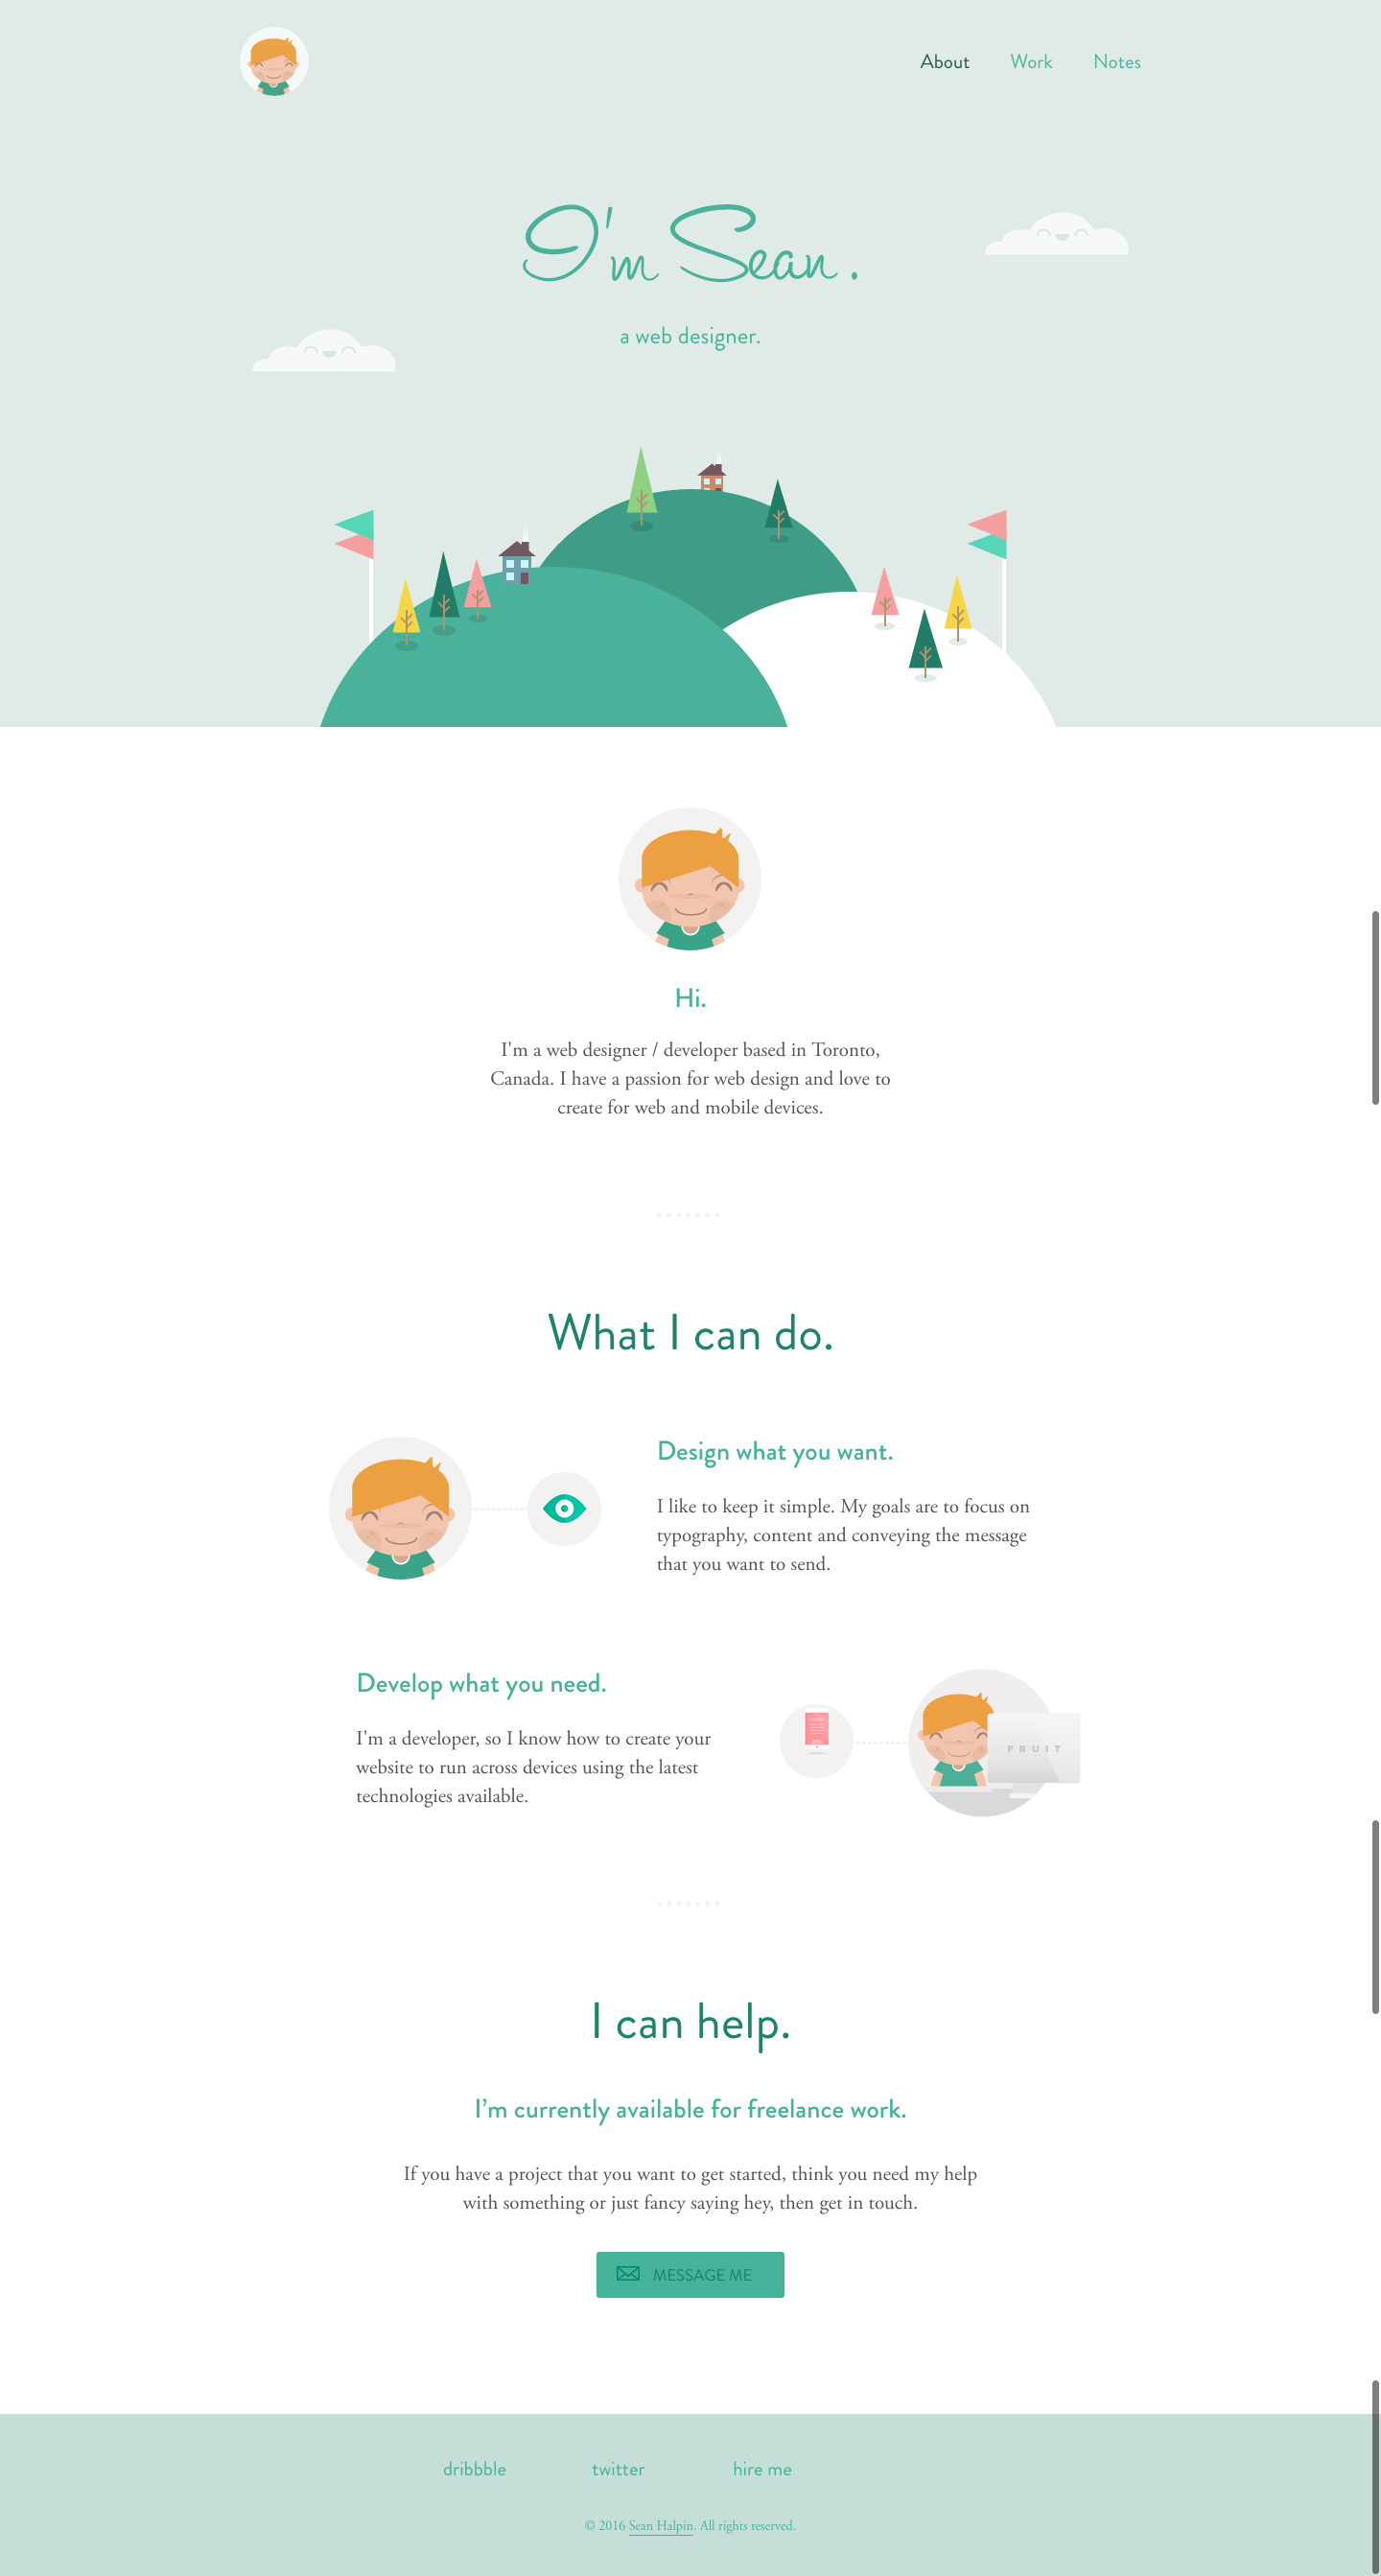 Sean_Halpin___a_web_designer___developer___About.png  18 Personal Websites to Inspire Your Own Sean Halpin   a web designer   developer   About